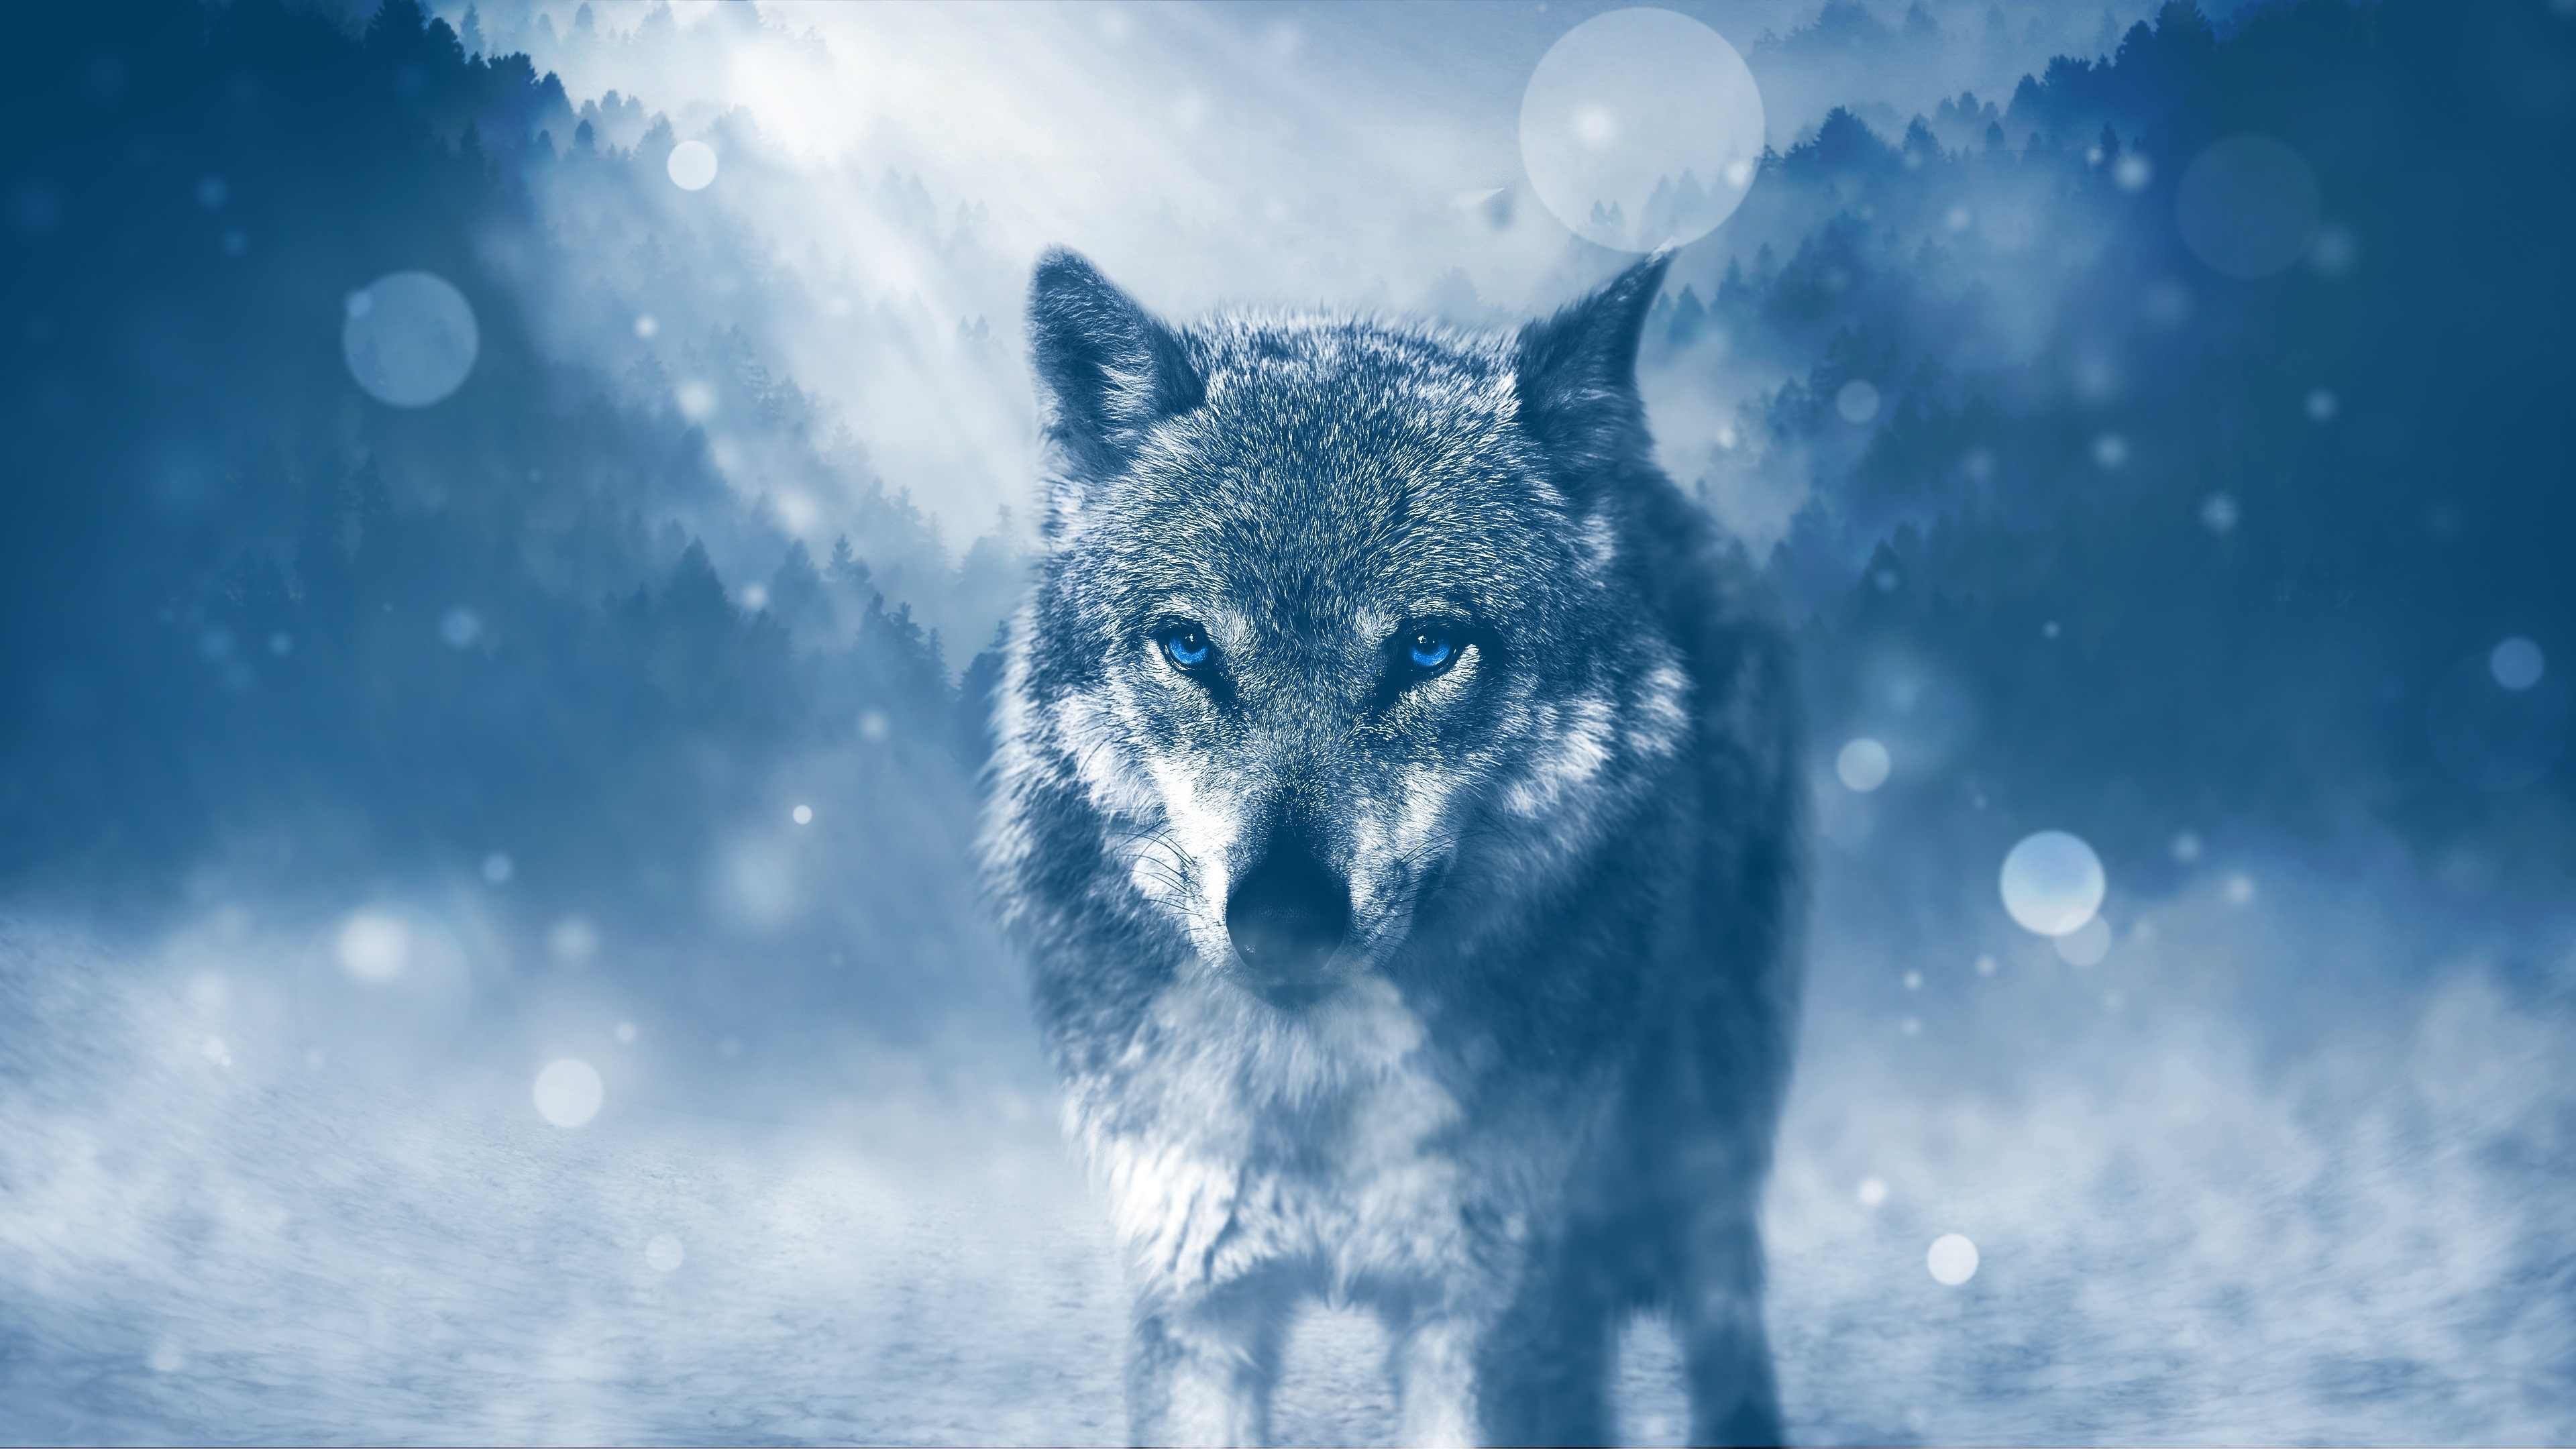 Wallpaper Wolf with blue eyes